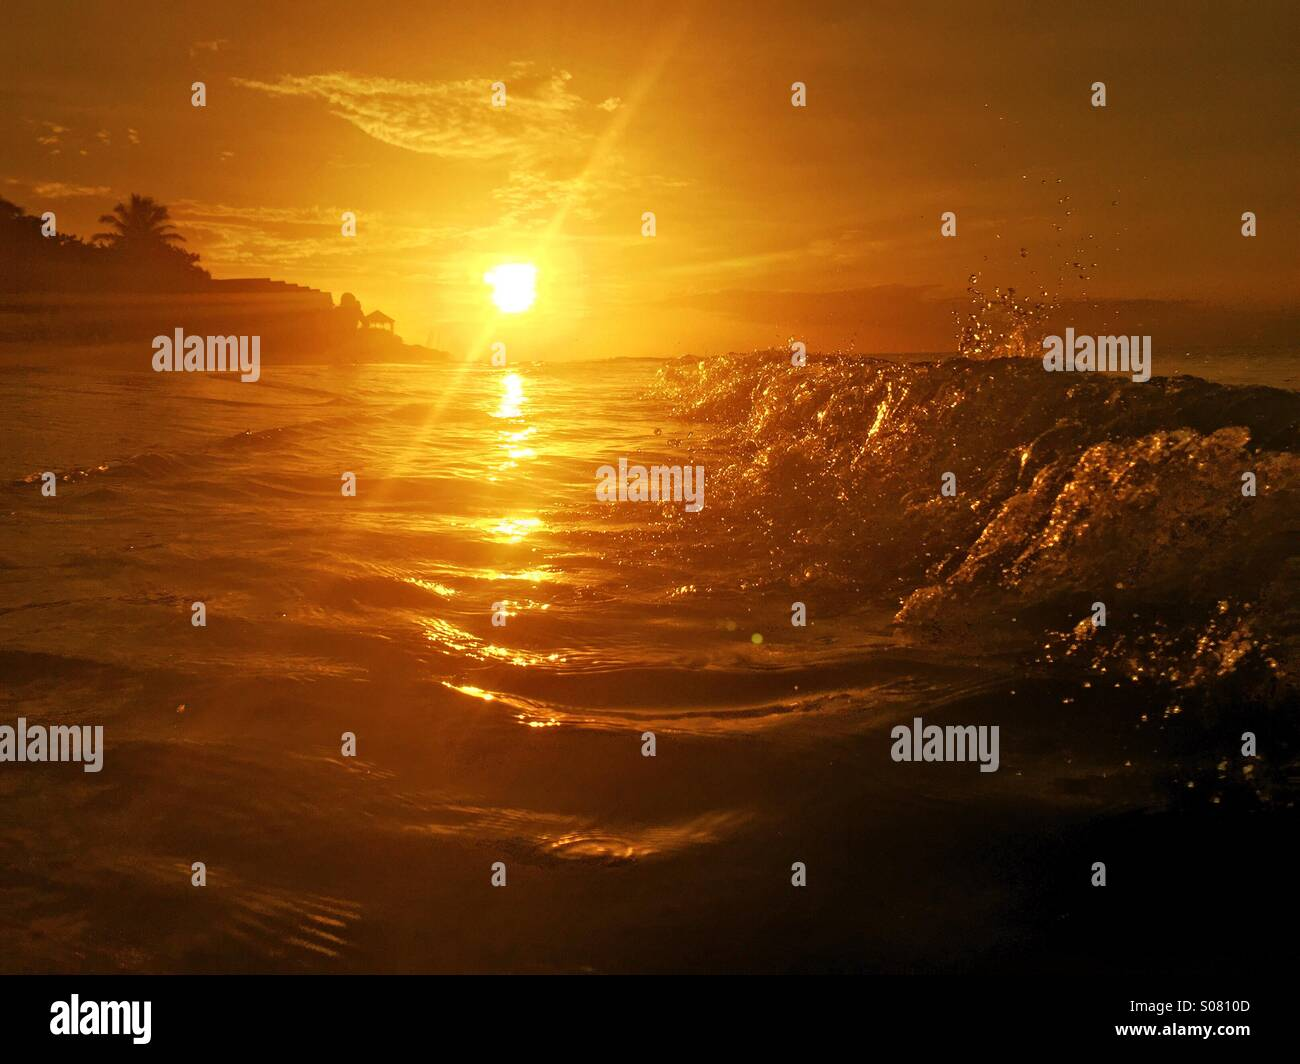 Waves at sunset on the beach - Stock Image